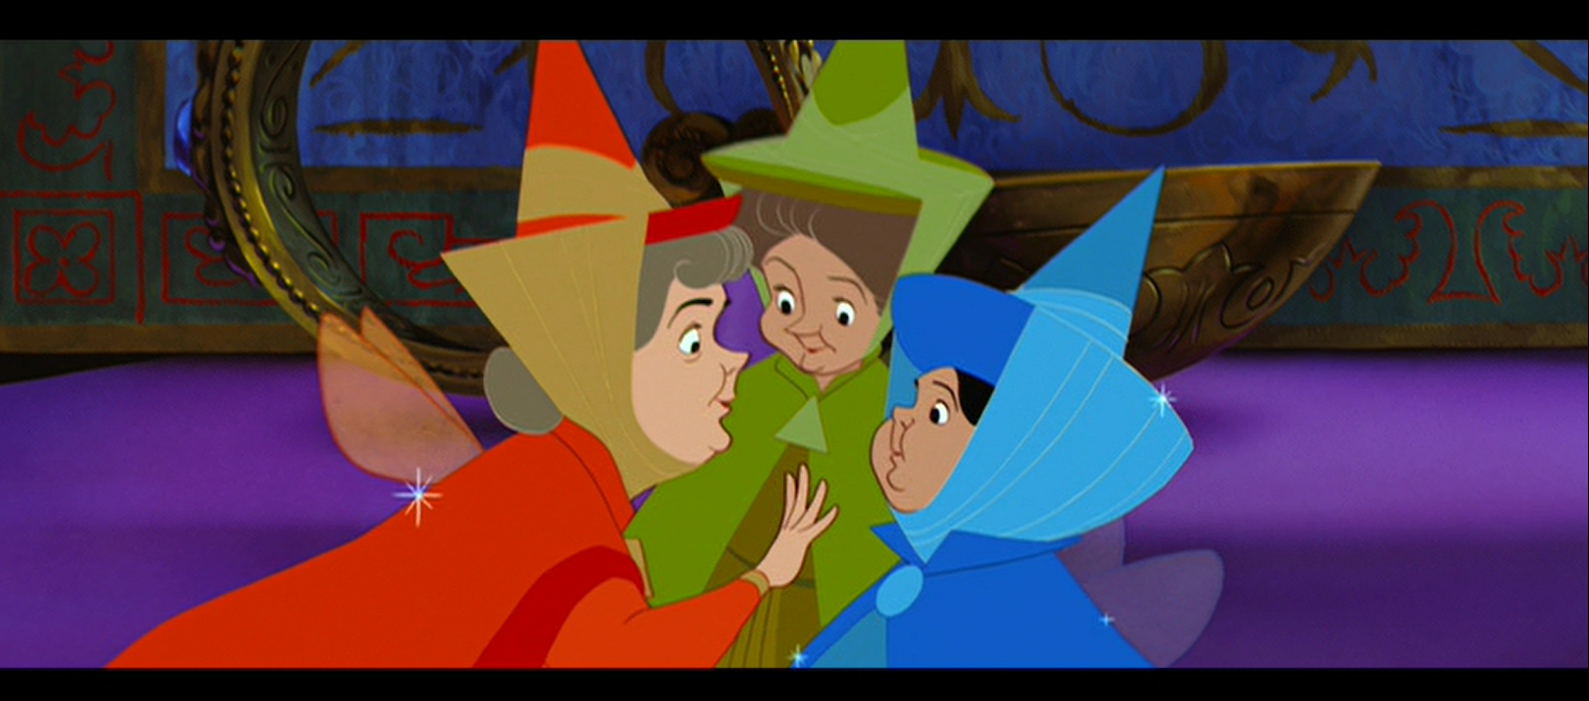 Uncategorized Flora Fauna And Merryweather princess talk 8 aurora fangirls are we the 3 good fairies flora fauna and merryweather